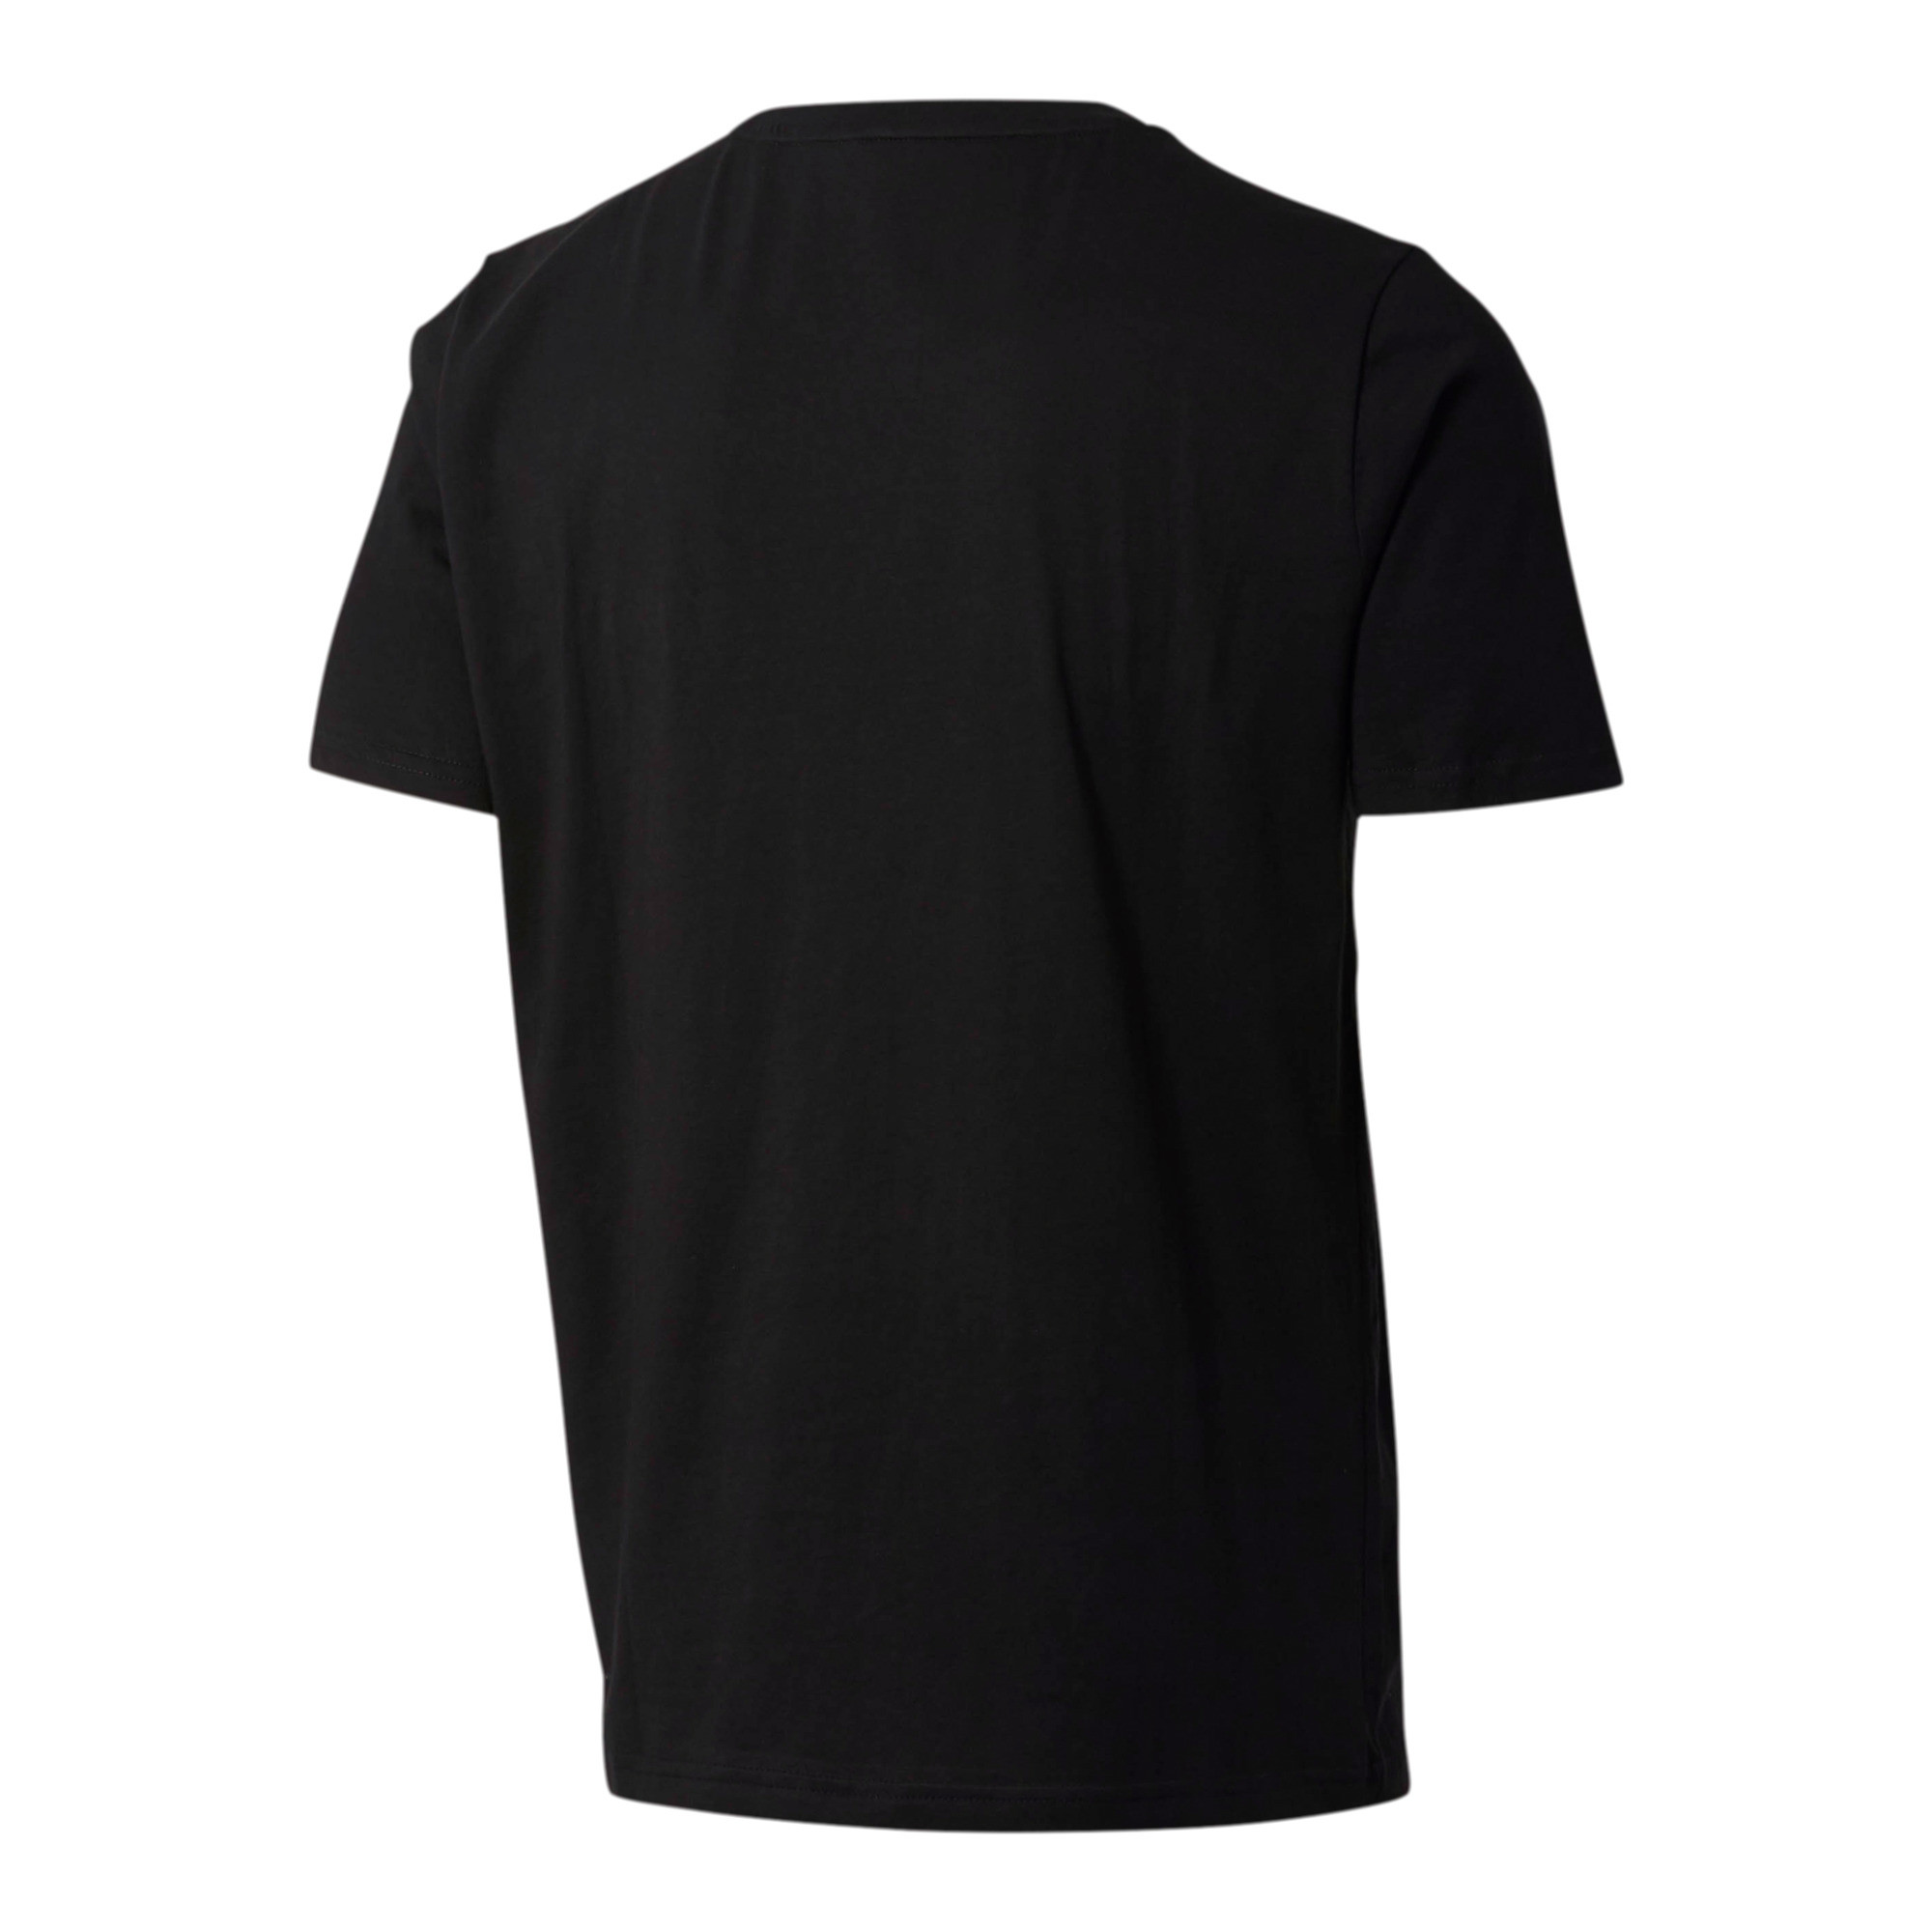 PUMA-Logo-AOP-Pack-Men-039-s-Graphic-Tee-Men-Tee-Basics thumbnail 3